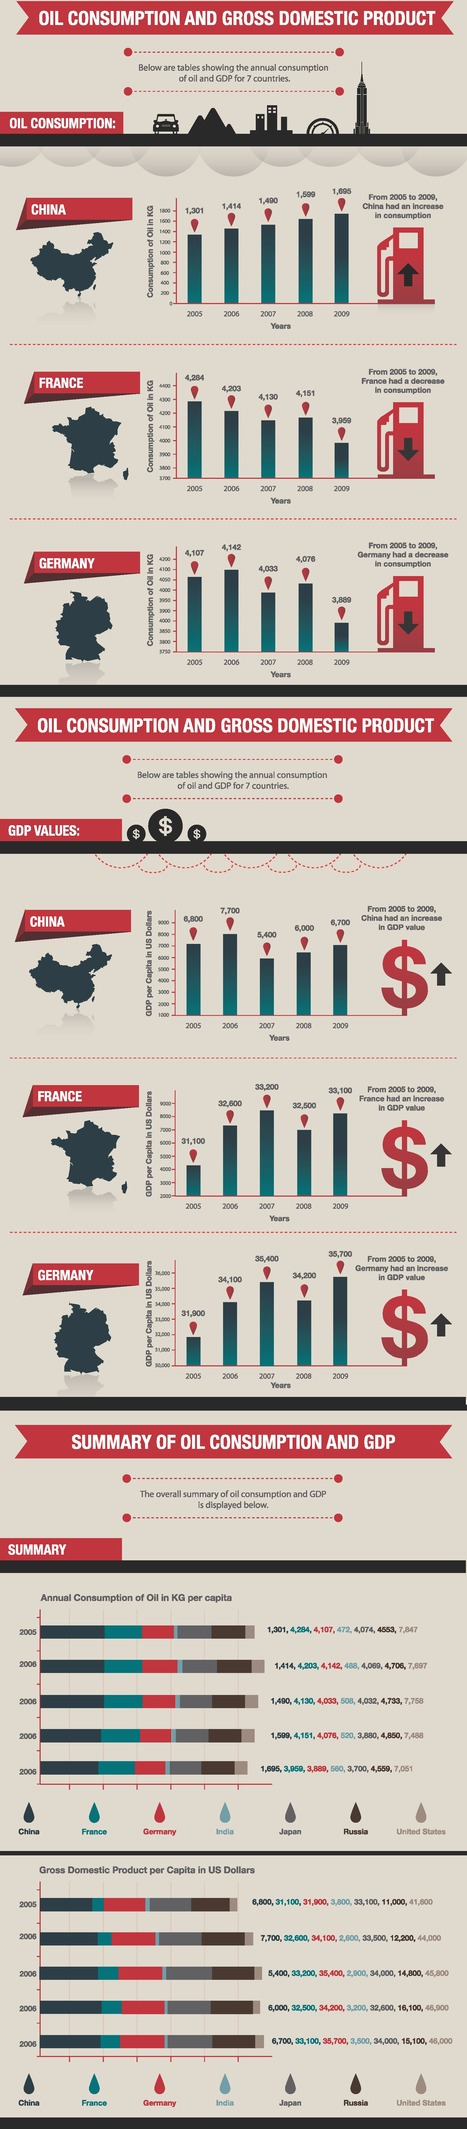 Oil Consumption and GDP [infographic] | Space saving in the Supply chain | Scoop.it